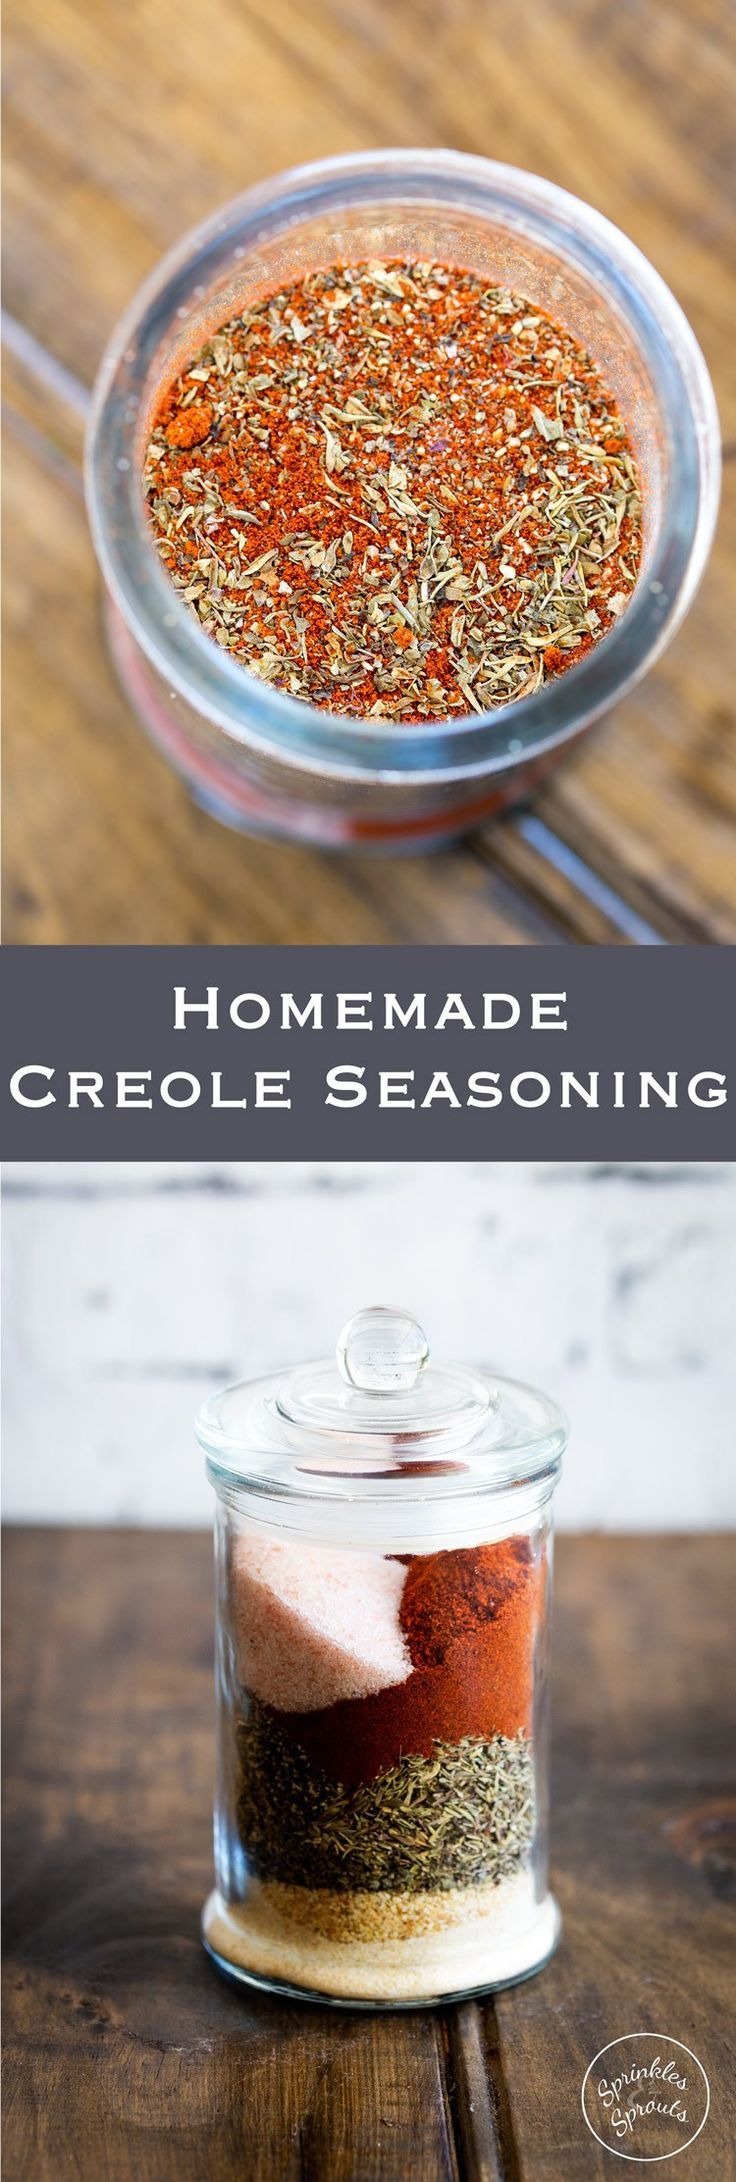 This Creole Seasoning is a wonderful blend of spices that could only come from New Orleans!! Perfect for adding flavour to so many dishes! From www.sprinklesands...